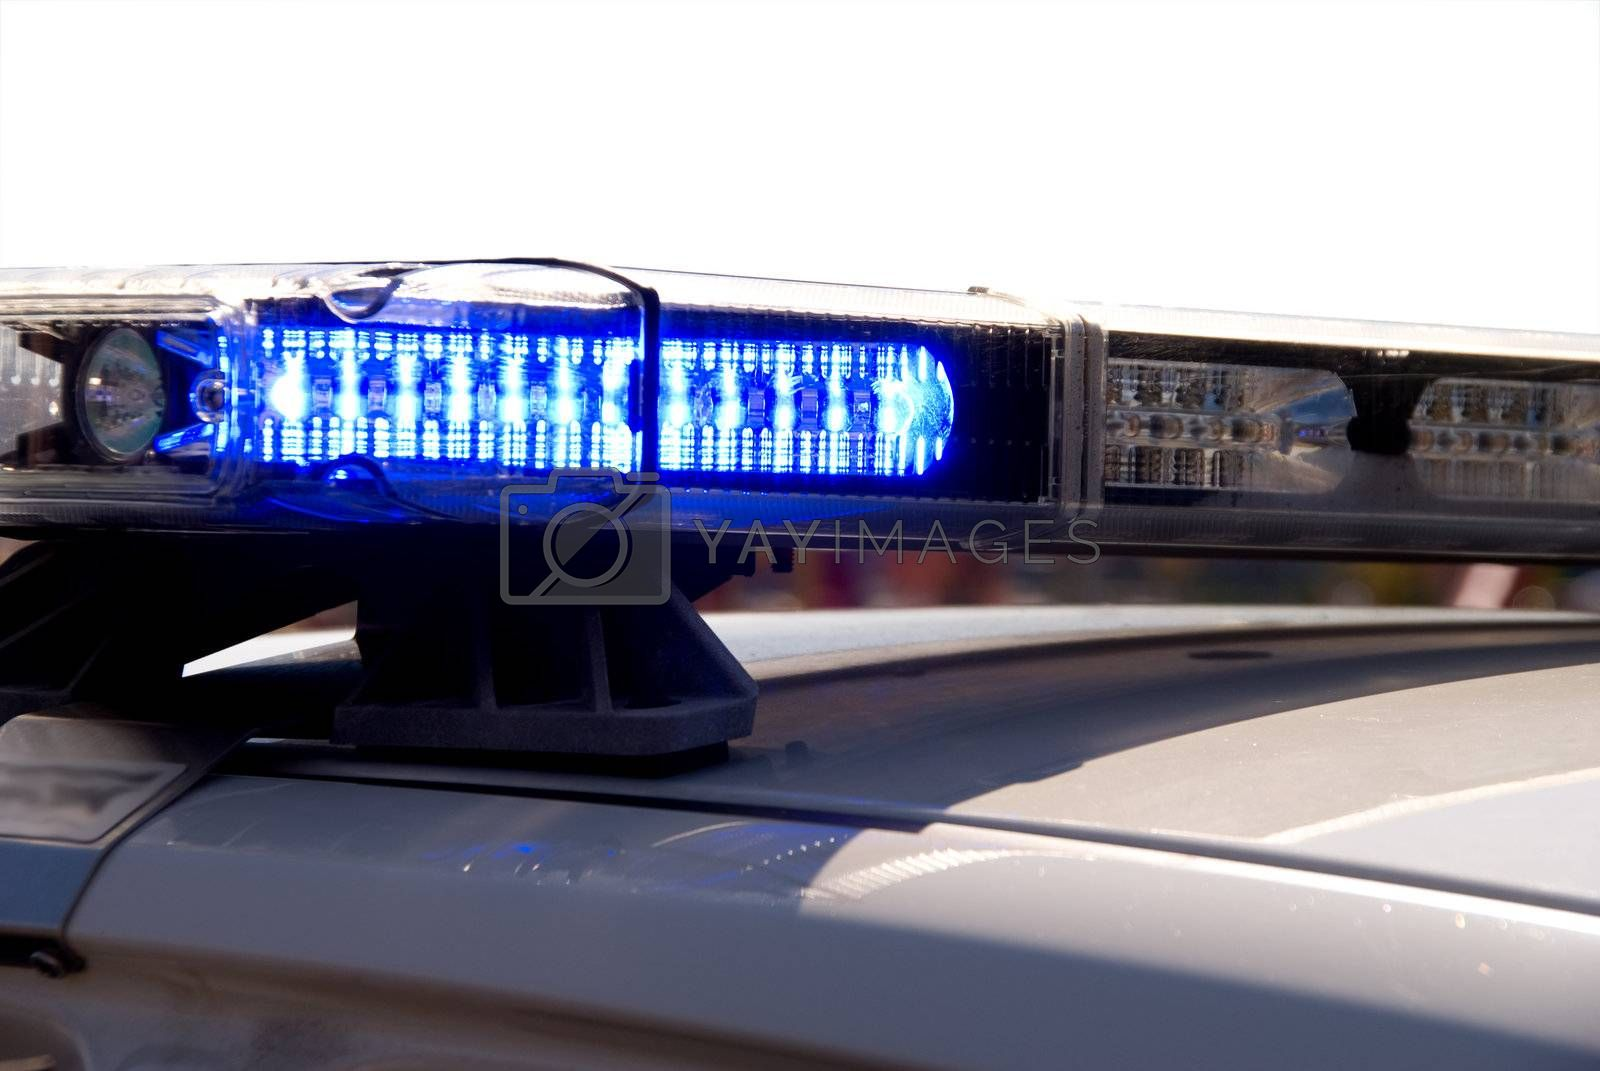 The light bar on top of a police cruiser.